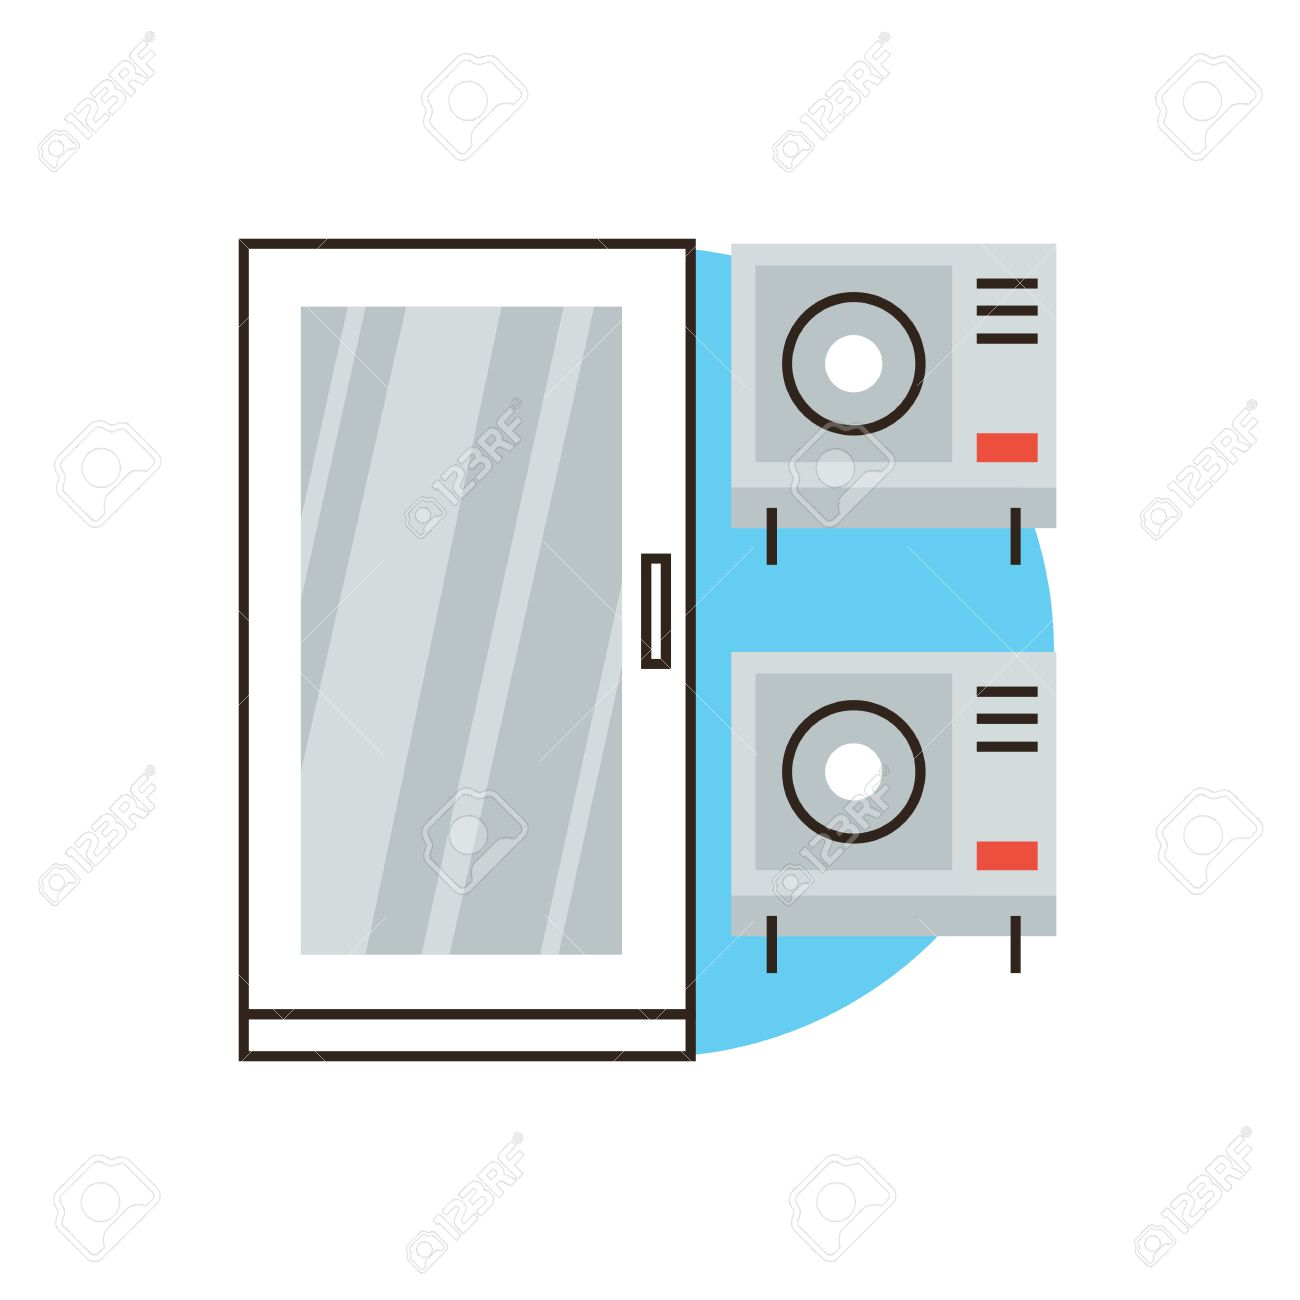 cold air conditioner clipart. thin line icon with flat design element of air conditioner system, fan conditioning, cool cold clipart